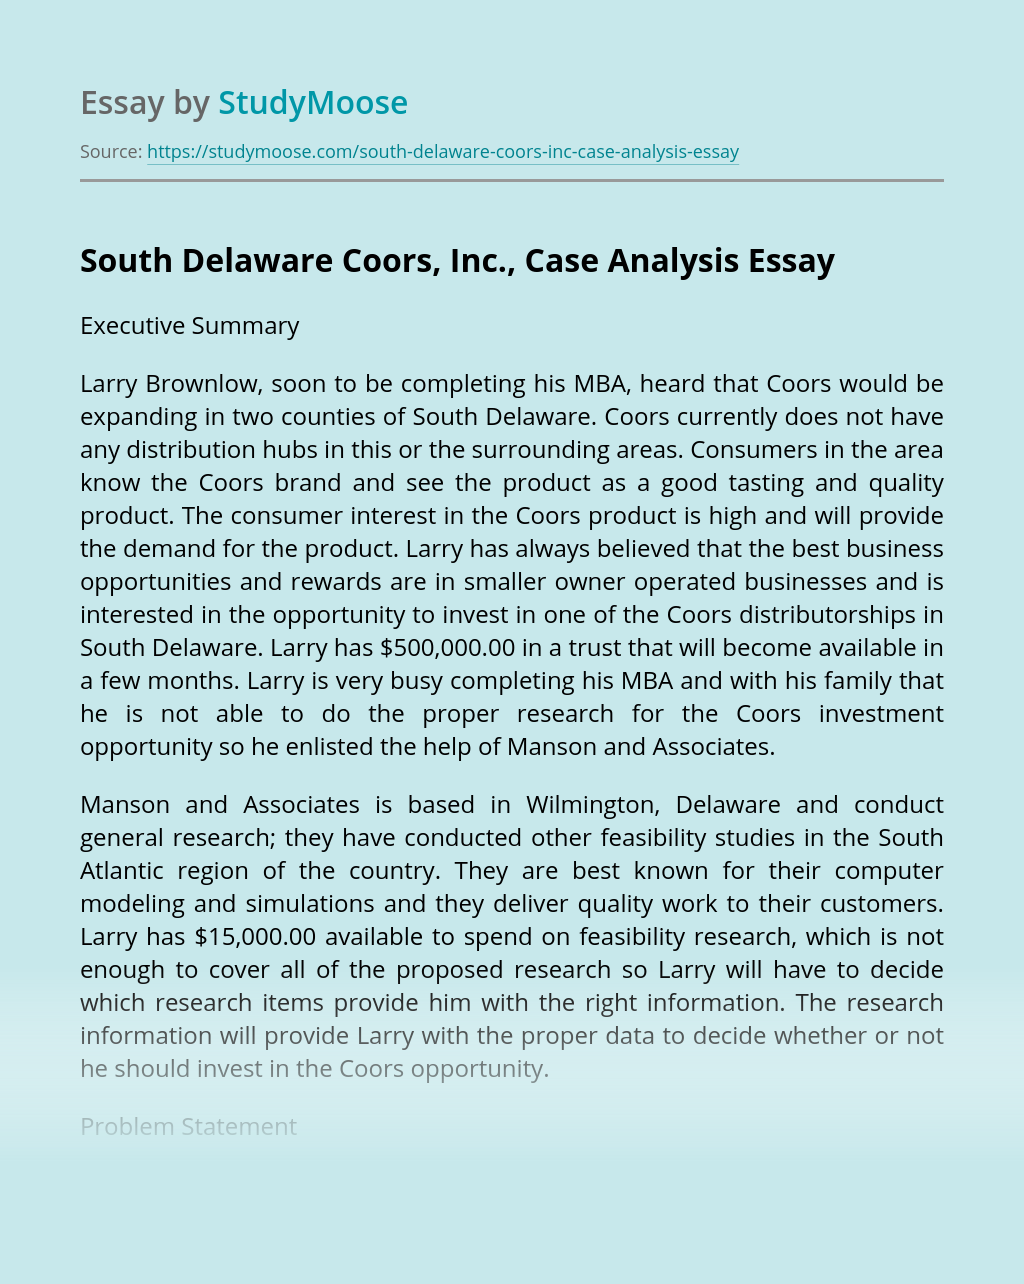 South Delaware Coors, Inc., Case Analysis